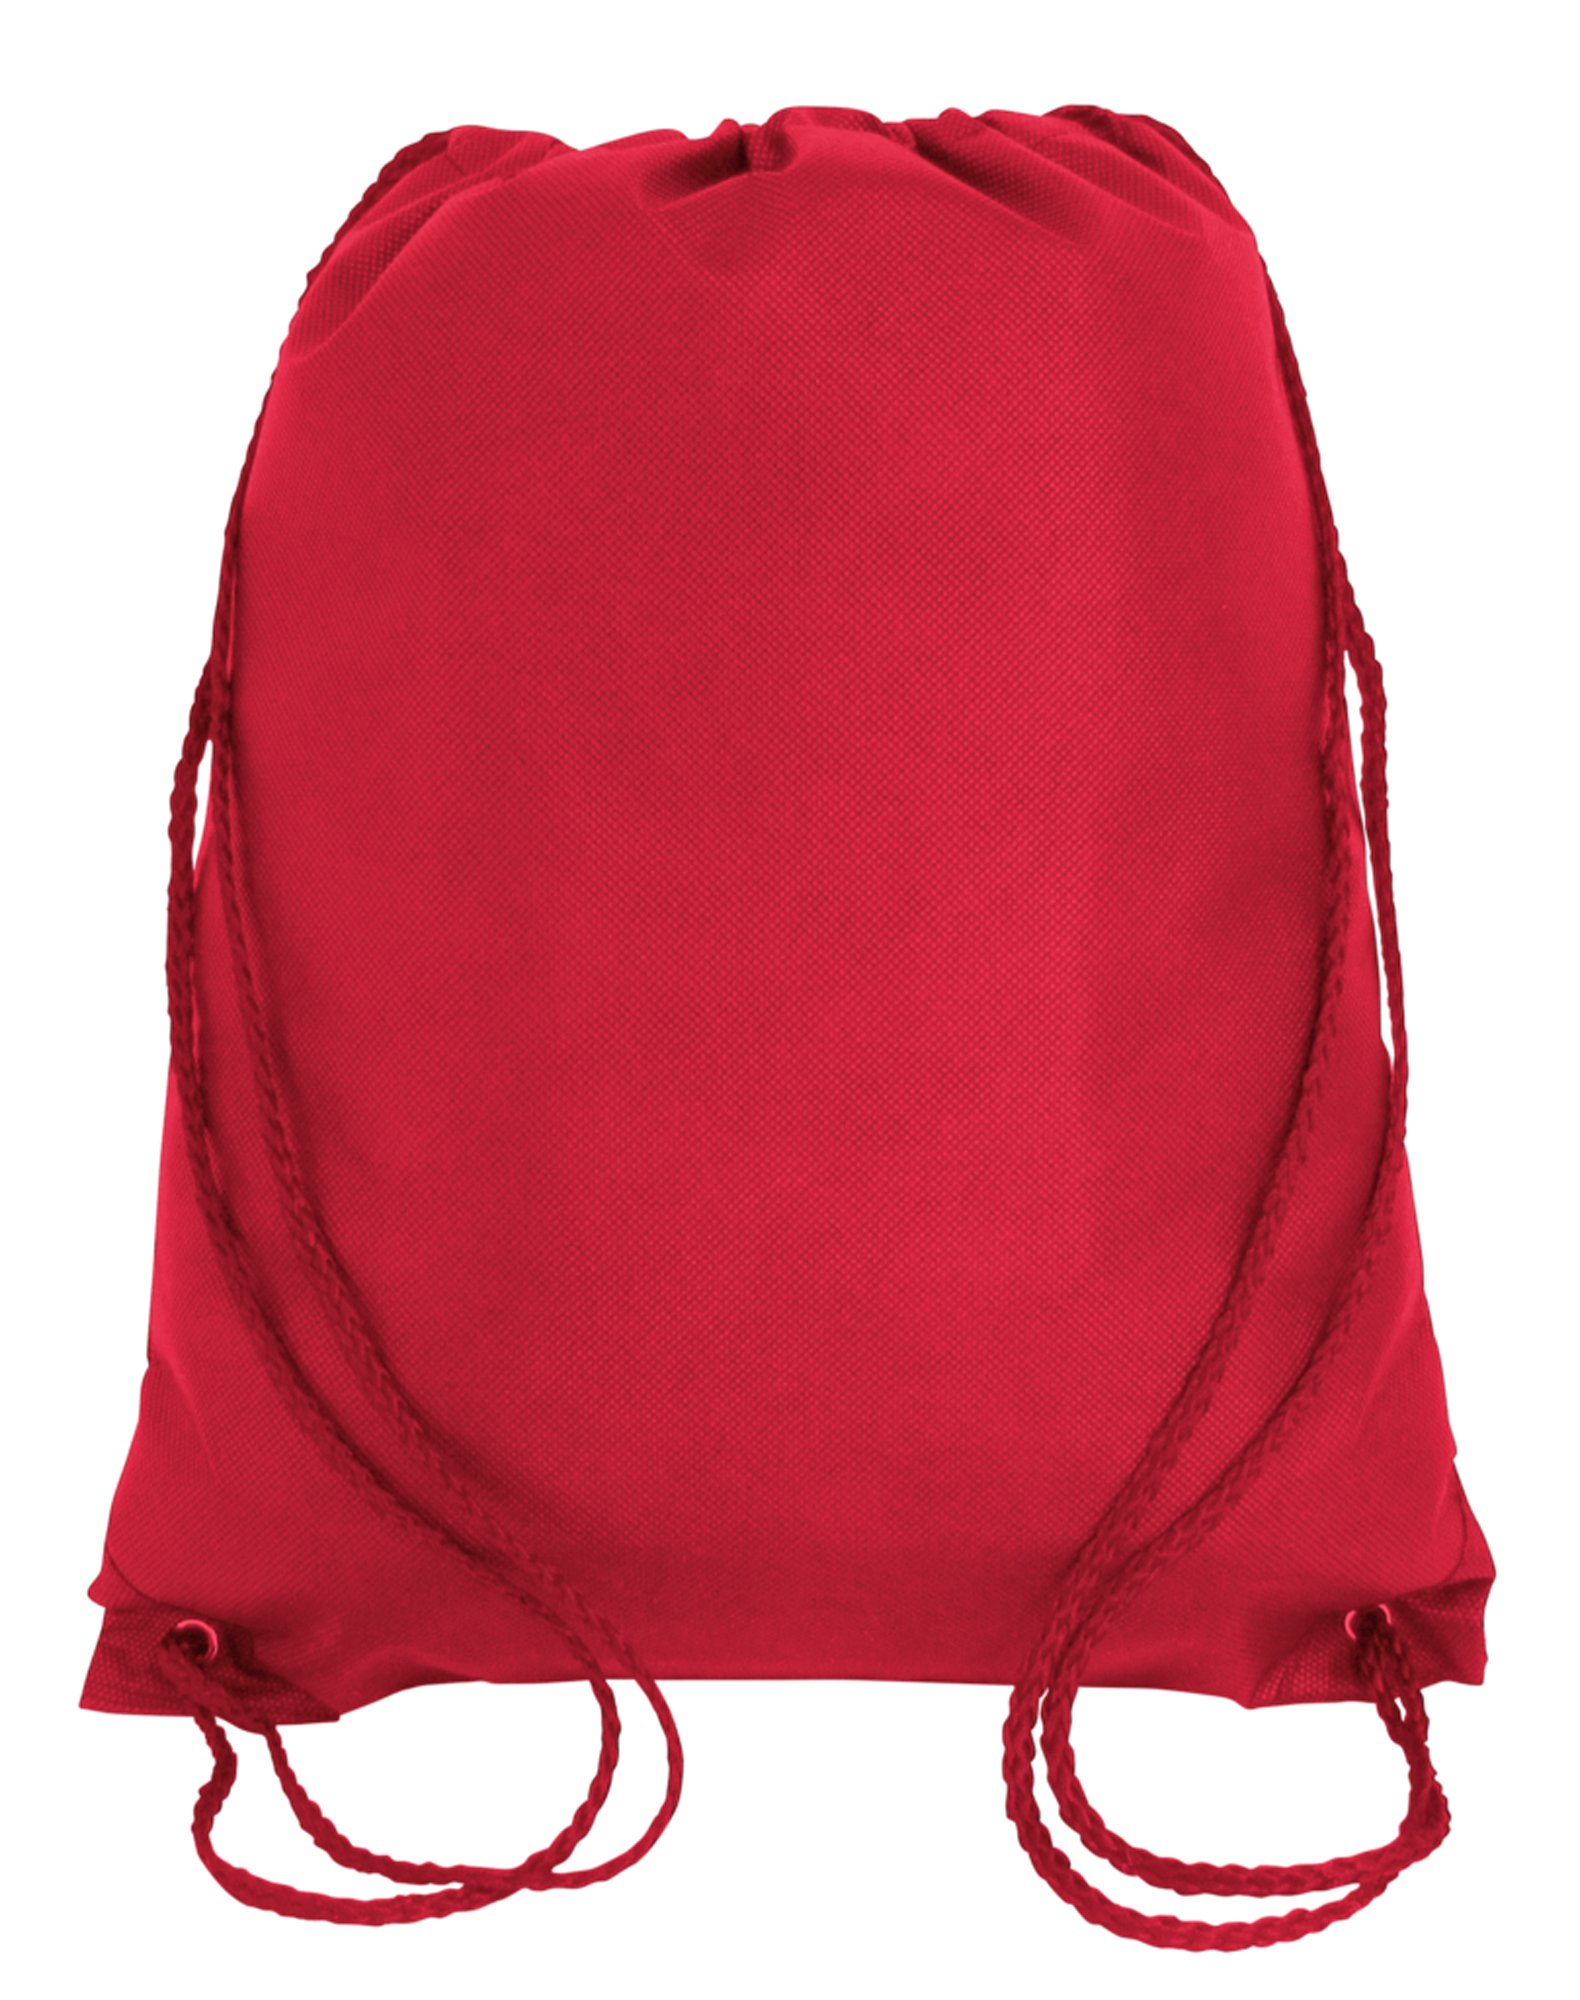 100 PACK - Multipurpose Non Woven Well Made Drawstring Backpack Bags BULK - Giveaway Church Bags School Bags Event Tradeshow bags Charity Donation Wholesale Cheap Drawstring Backpacks (Red)